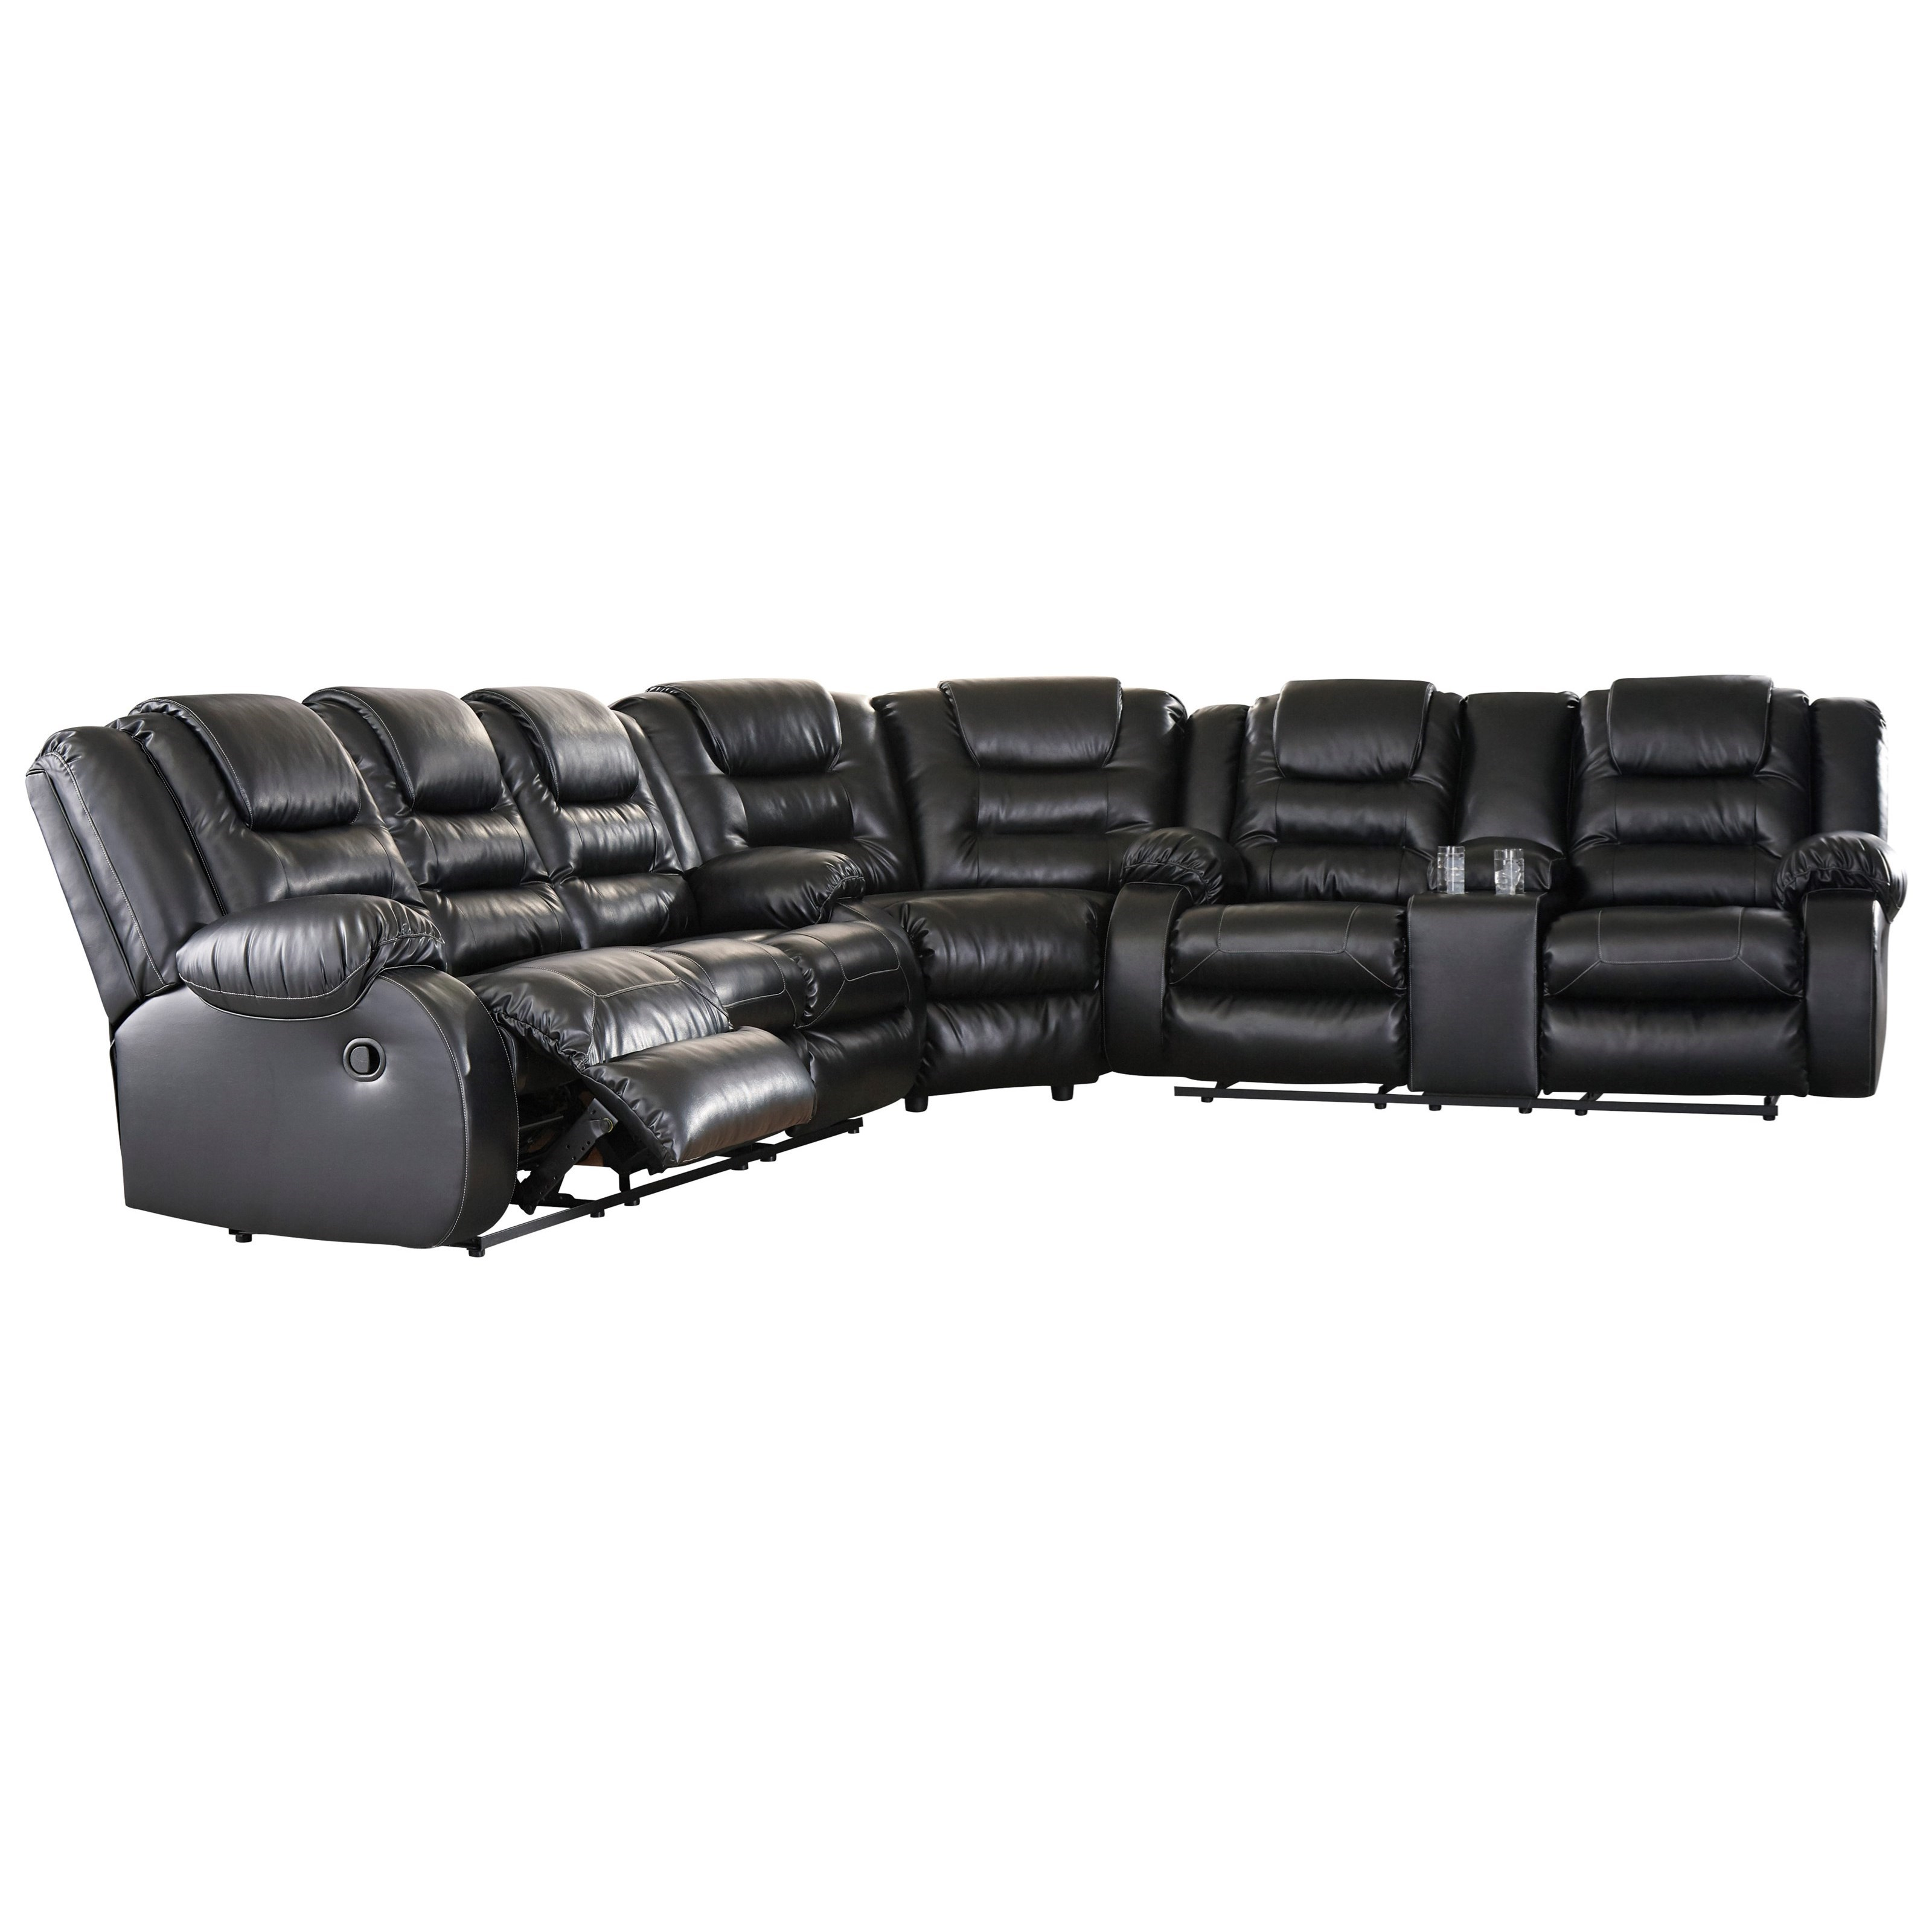 Signature Design by Ashley Vacherie Reclining Sectional Sofa - Item Number: 7930888+77+94